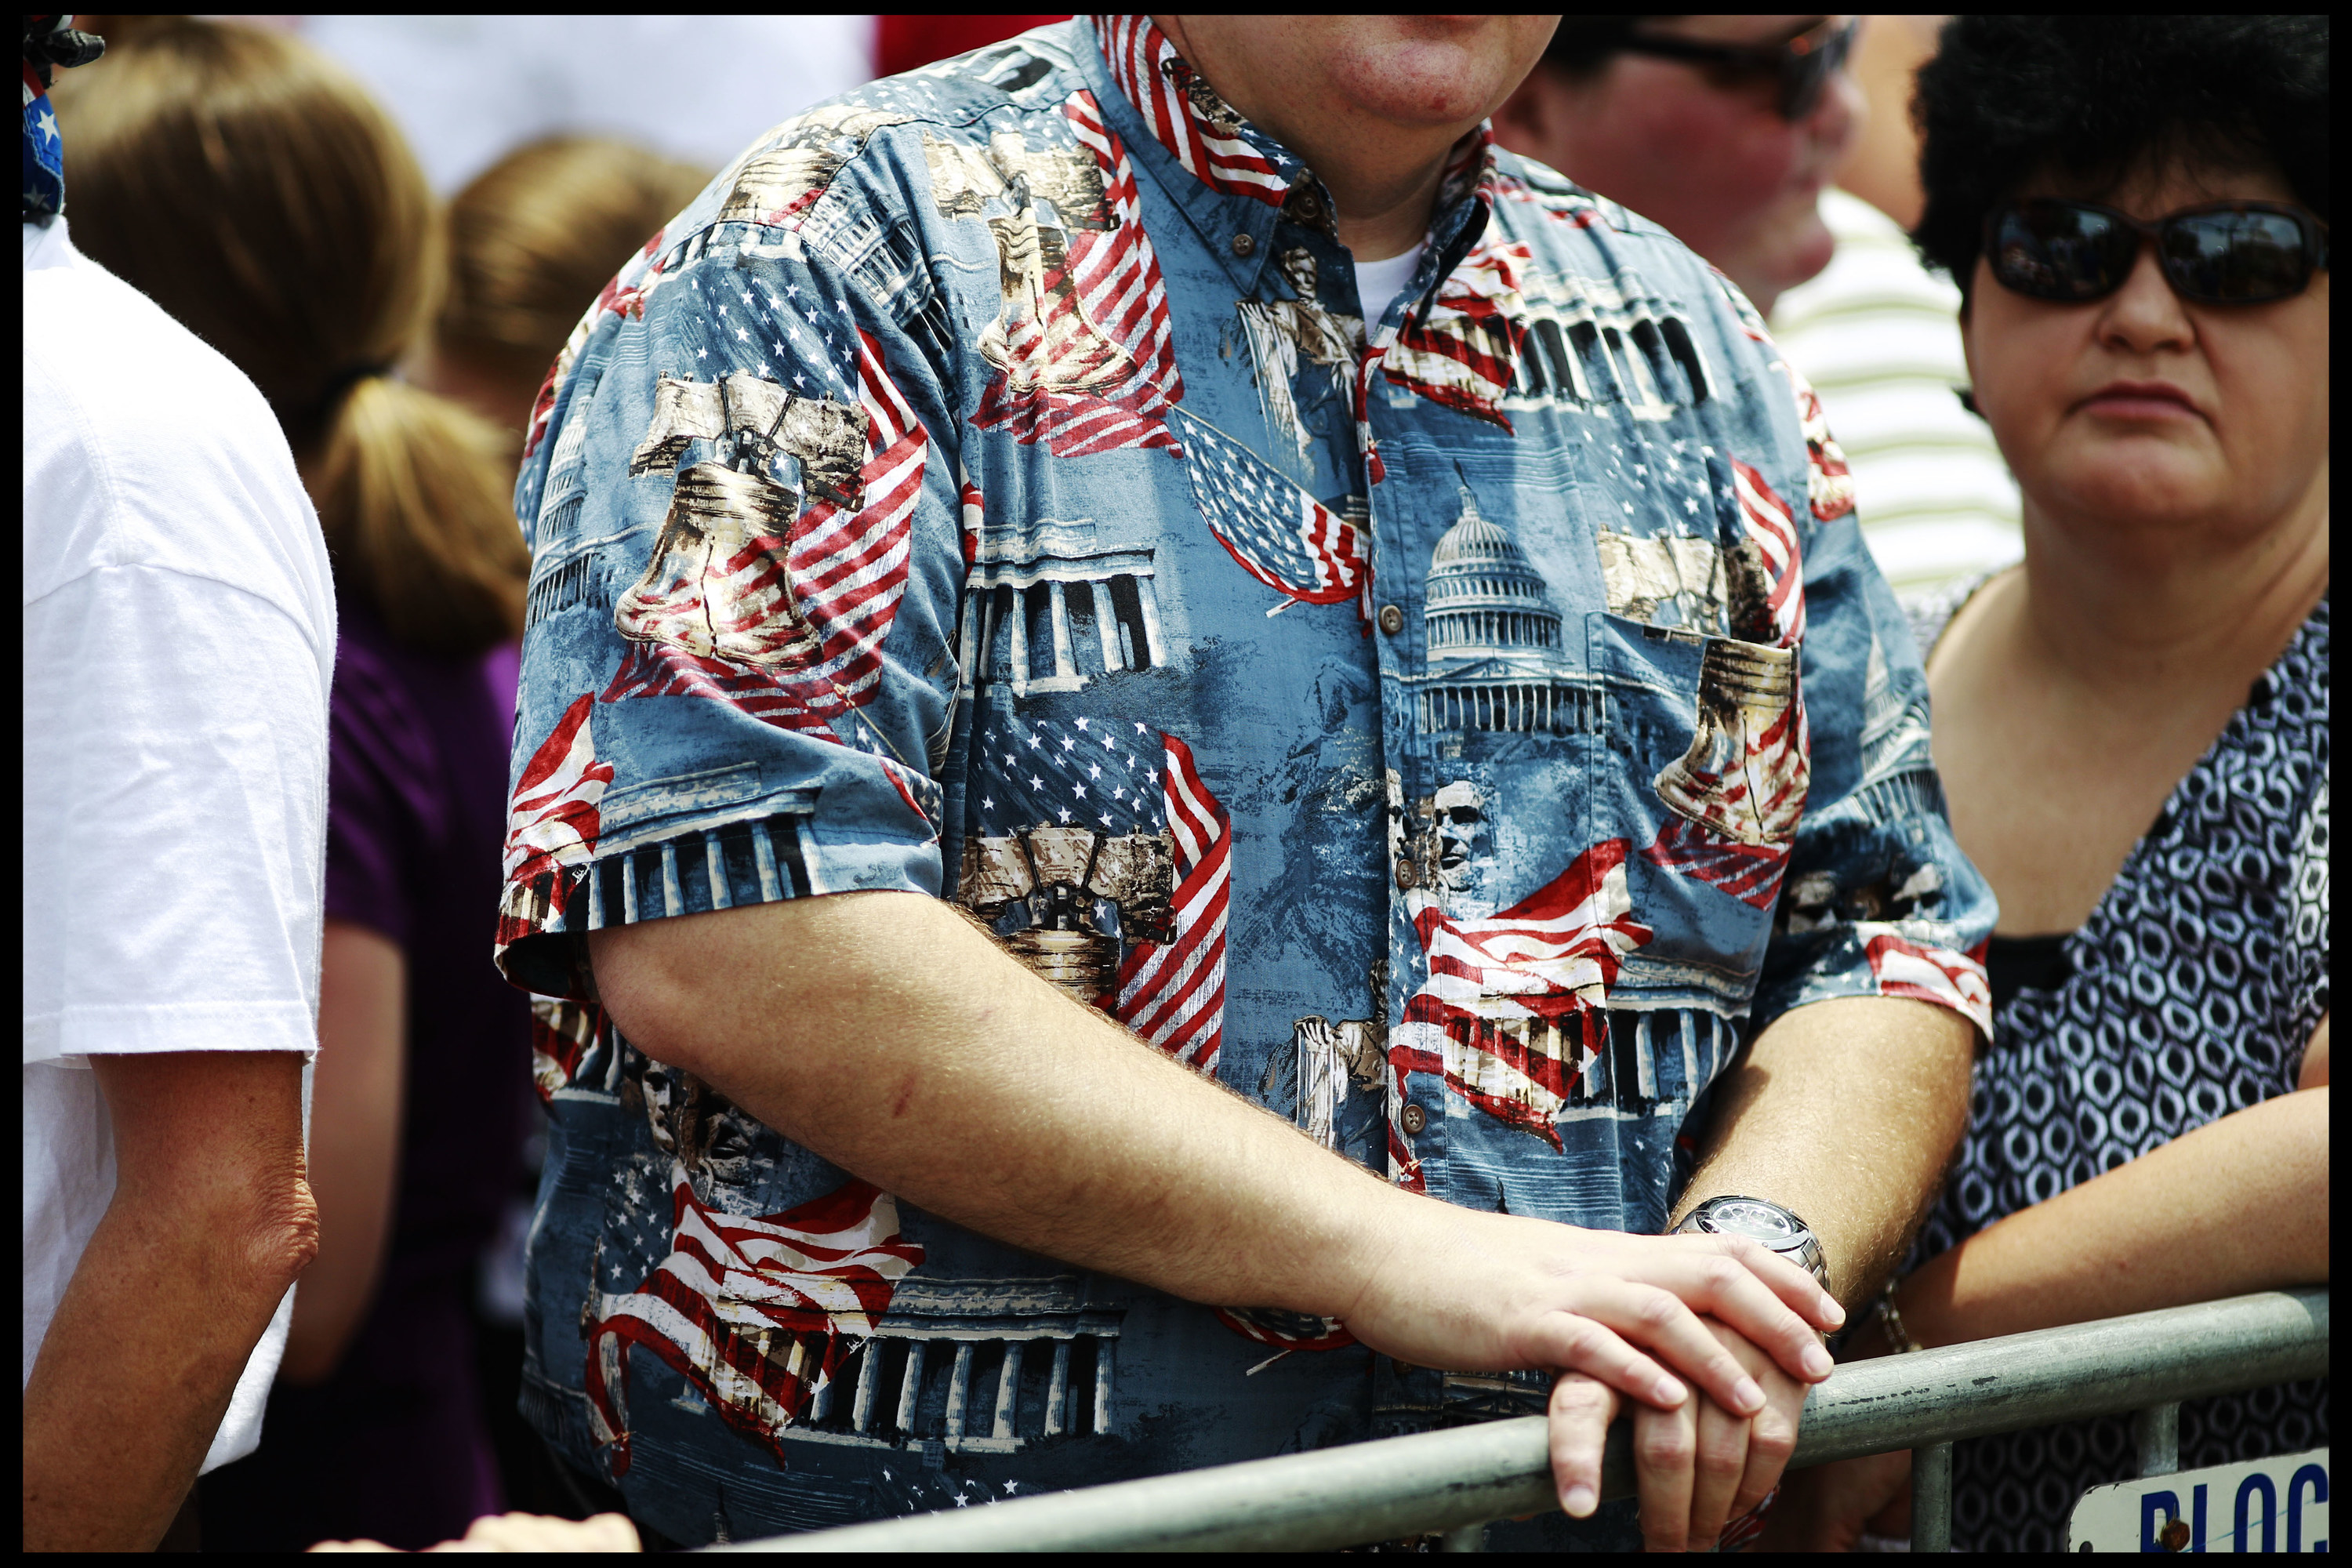 Close-up of shirt showing the American flag, White House, and other US government buildings